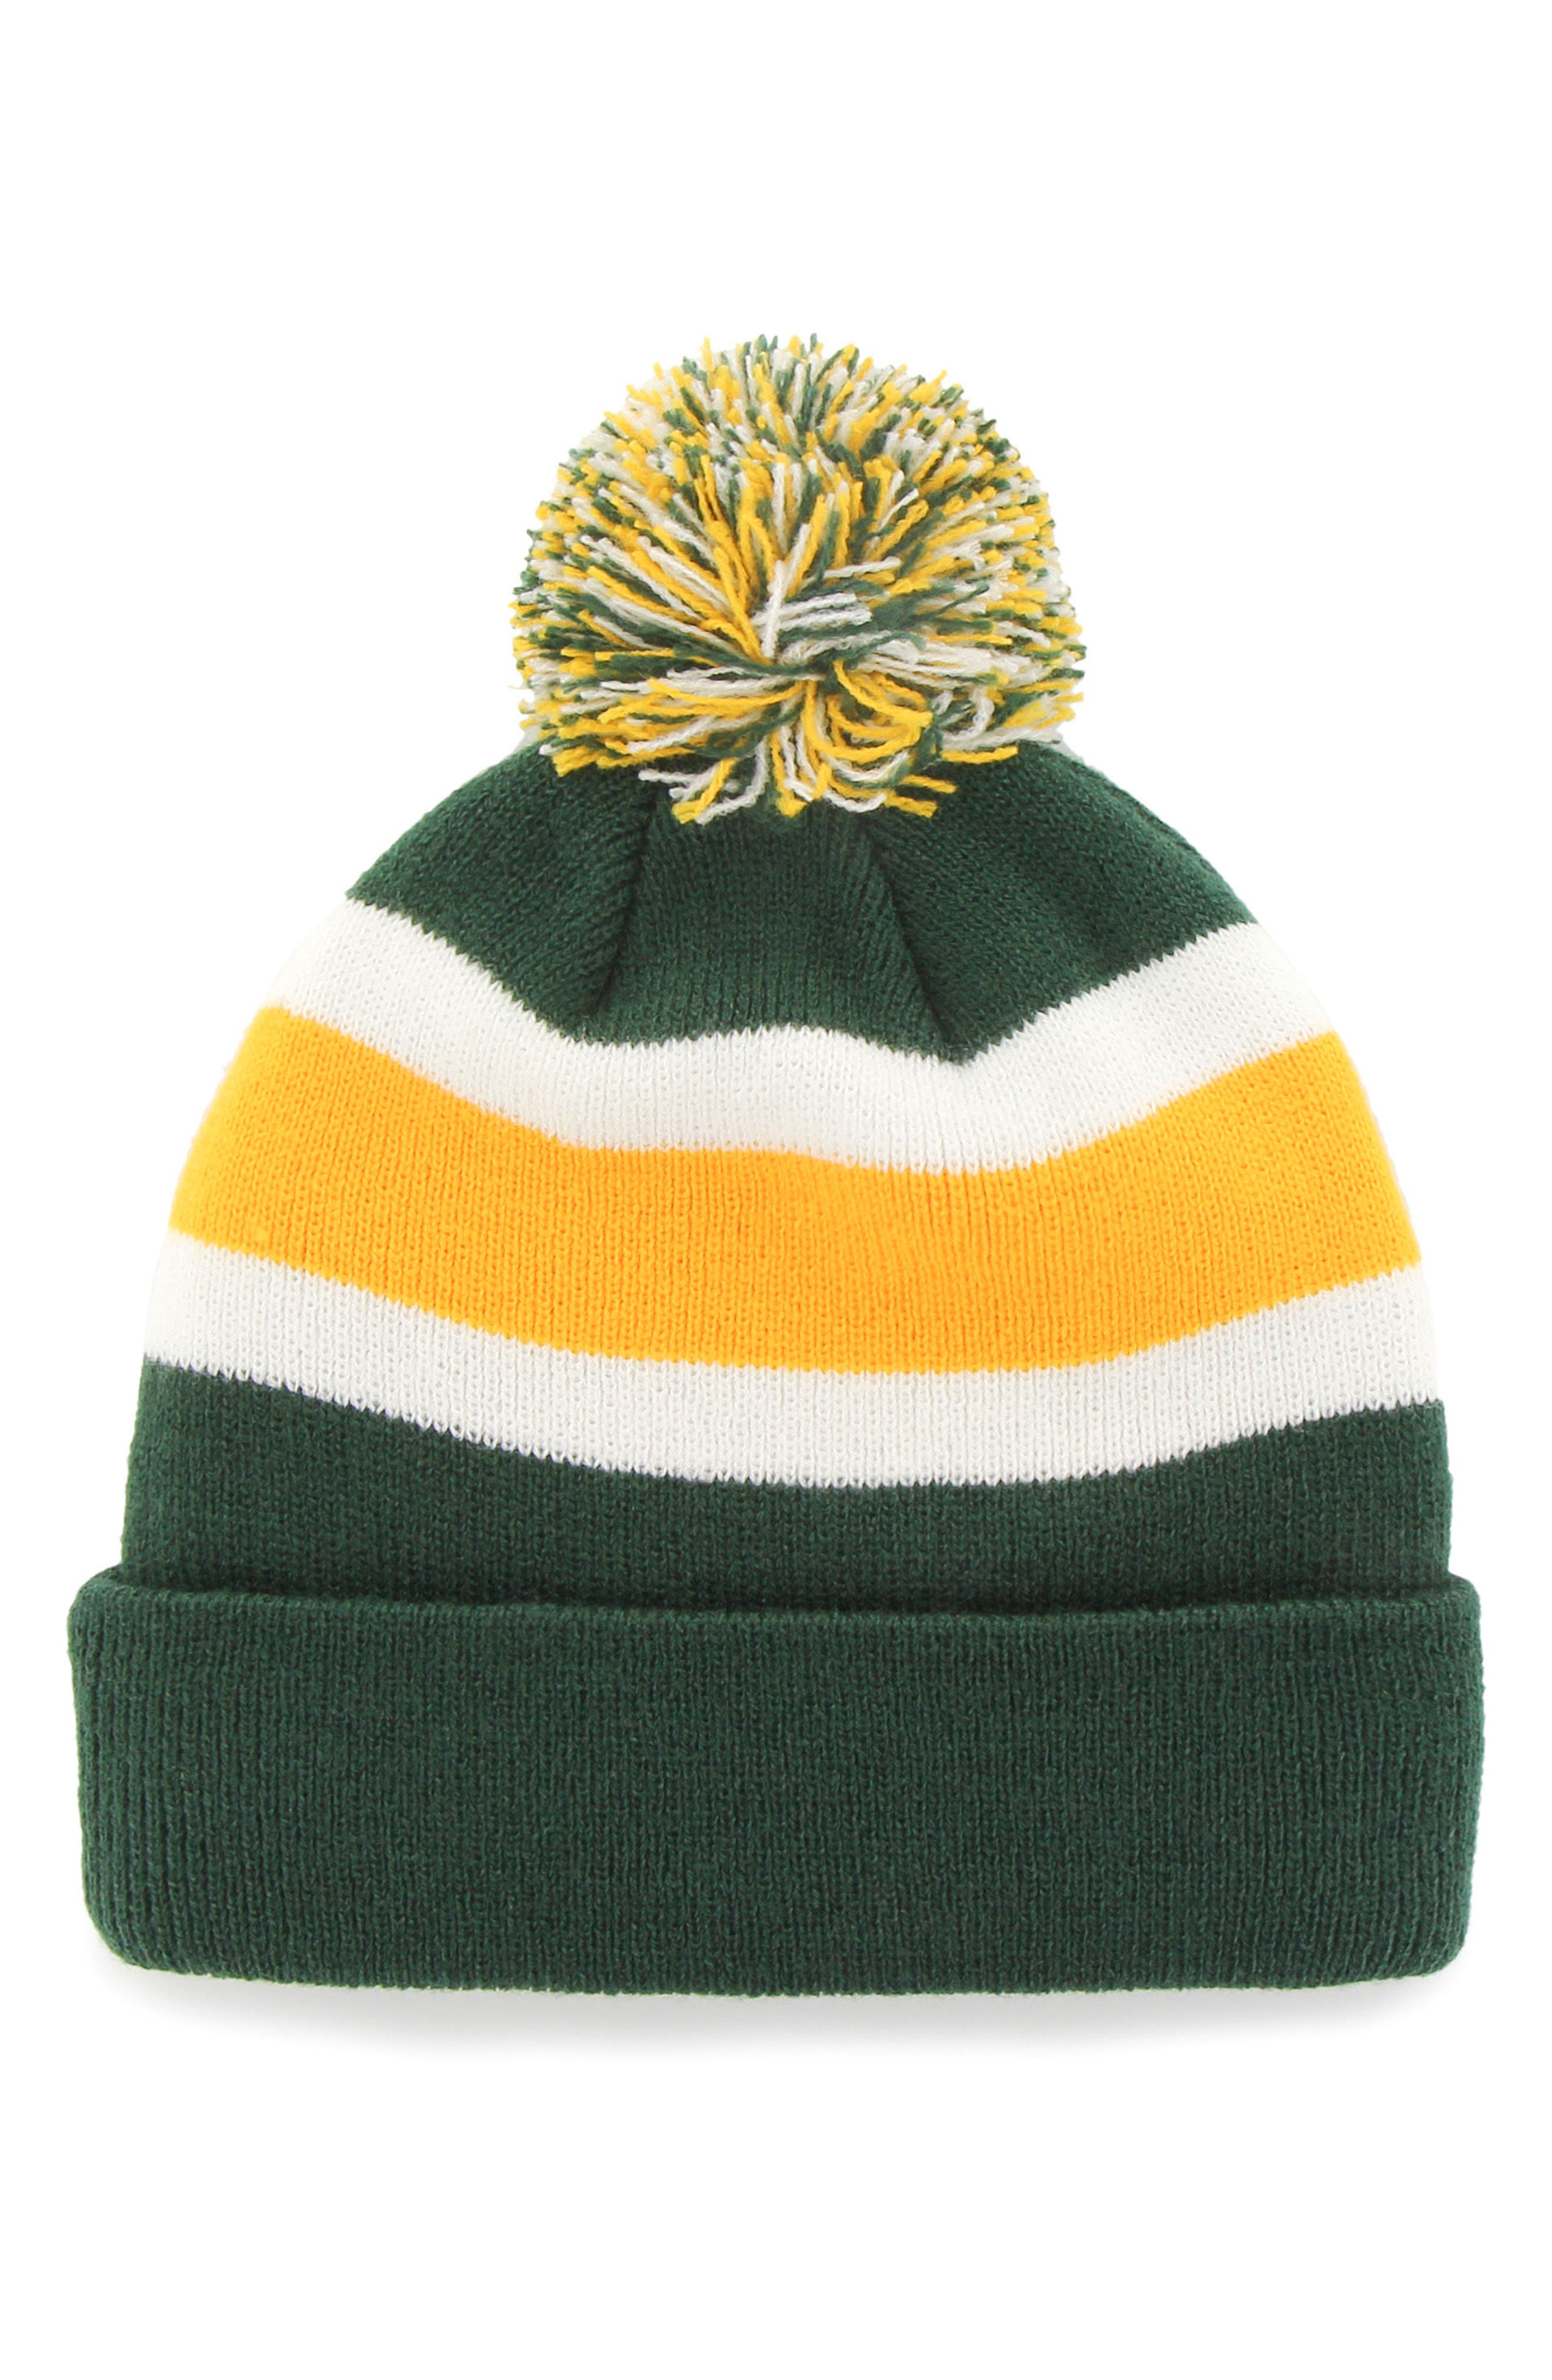 NFL Breakaway Knit Cap,                             Alternate thumbnail 8, color,